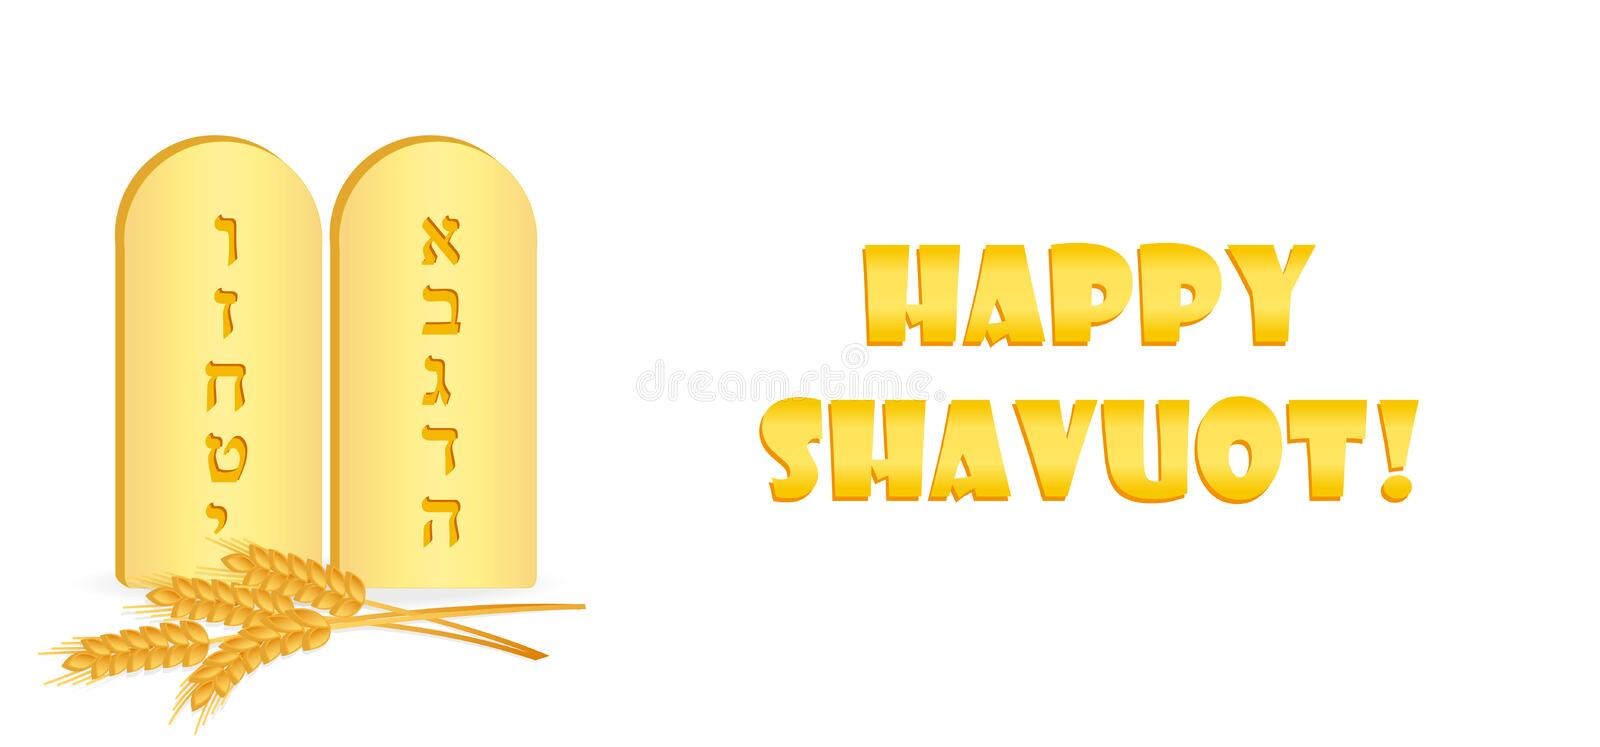 Jewish holiday of Shavuot, greeting banner. Jewish holiday of Shavuot, banner with Tablets of Stone with first ten letters of the Hebrew alphabet, wheat ears vector illustration